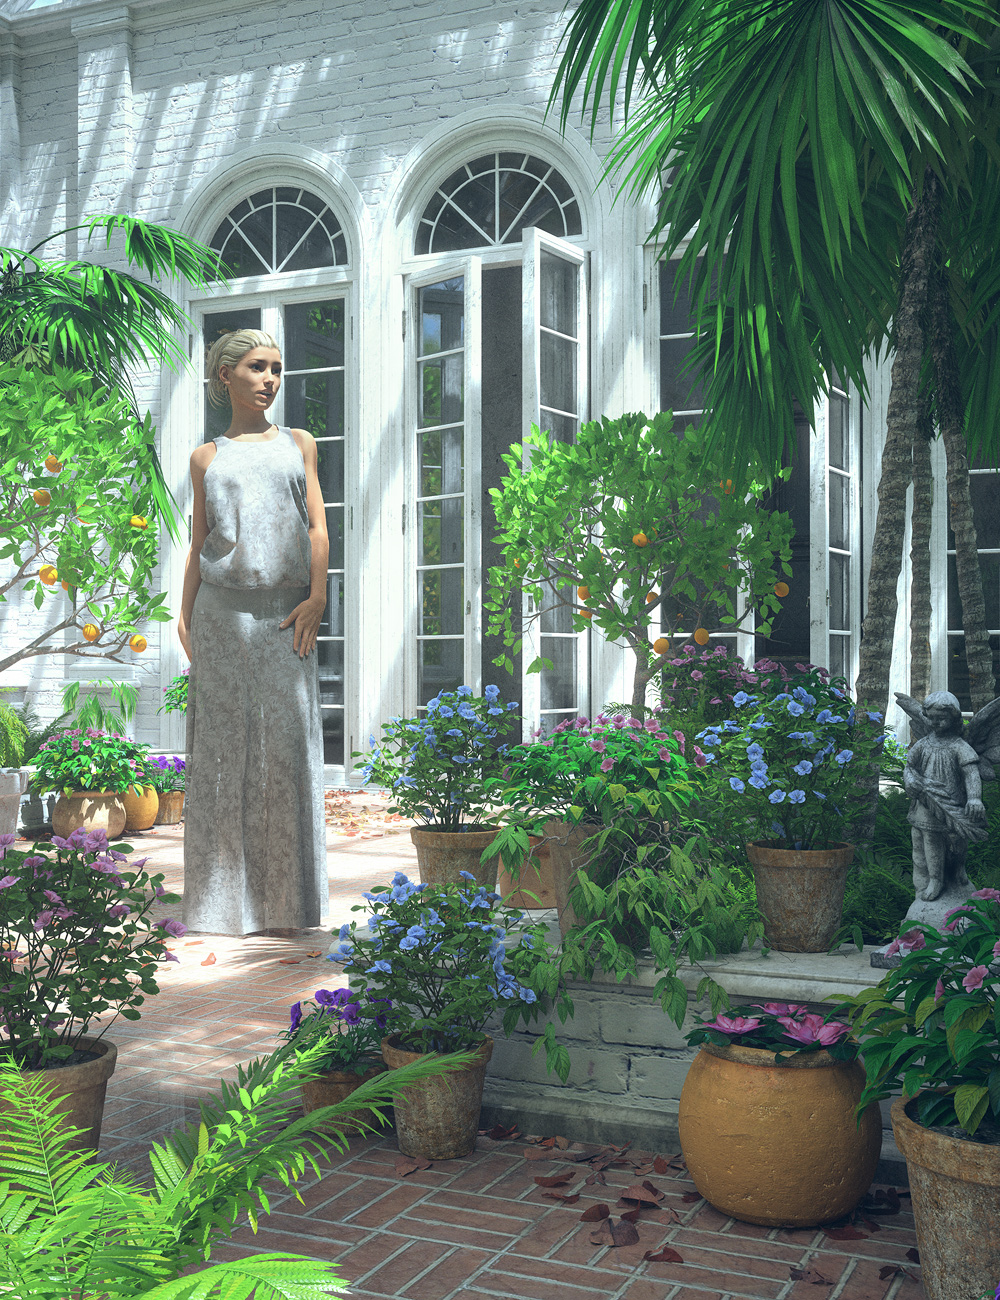 The Private Garden by: Stonemason, 3D Models by Daz 3D